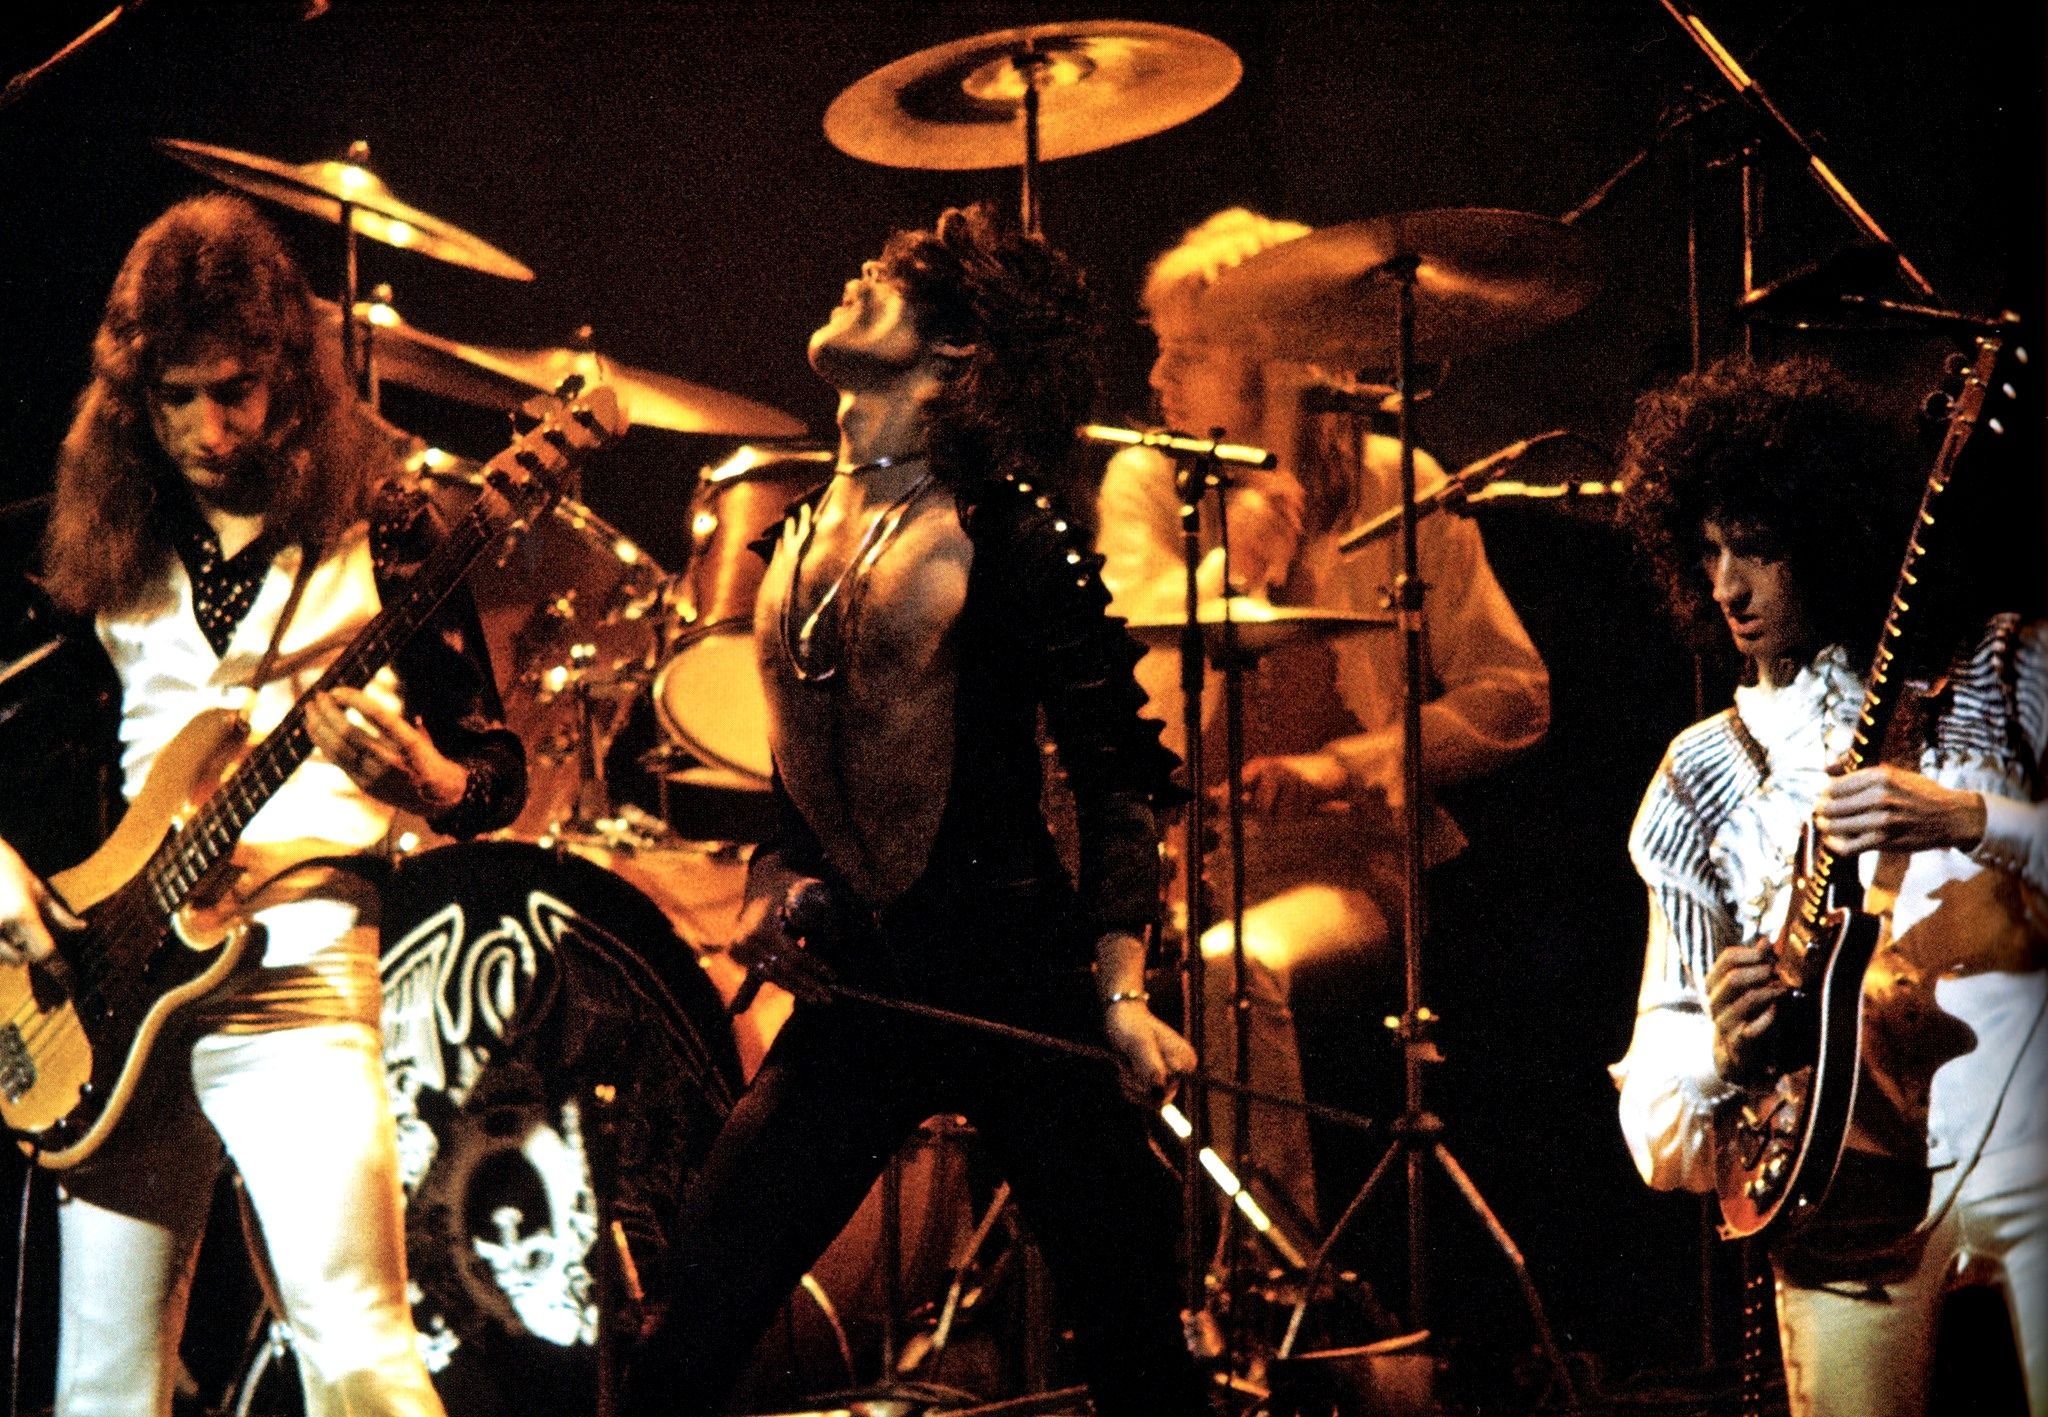 sheer heart attack tour queen queen heart tags sheer heart attack tour queen queen heart tags and heart attack